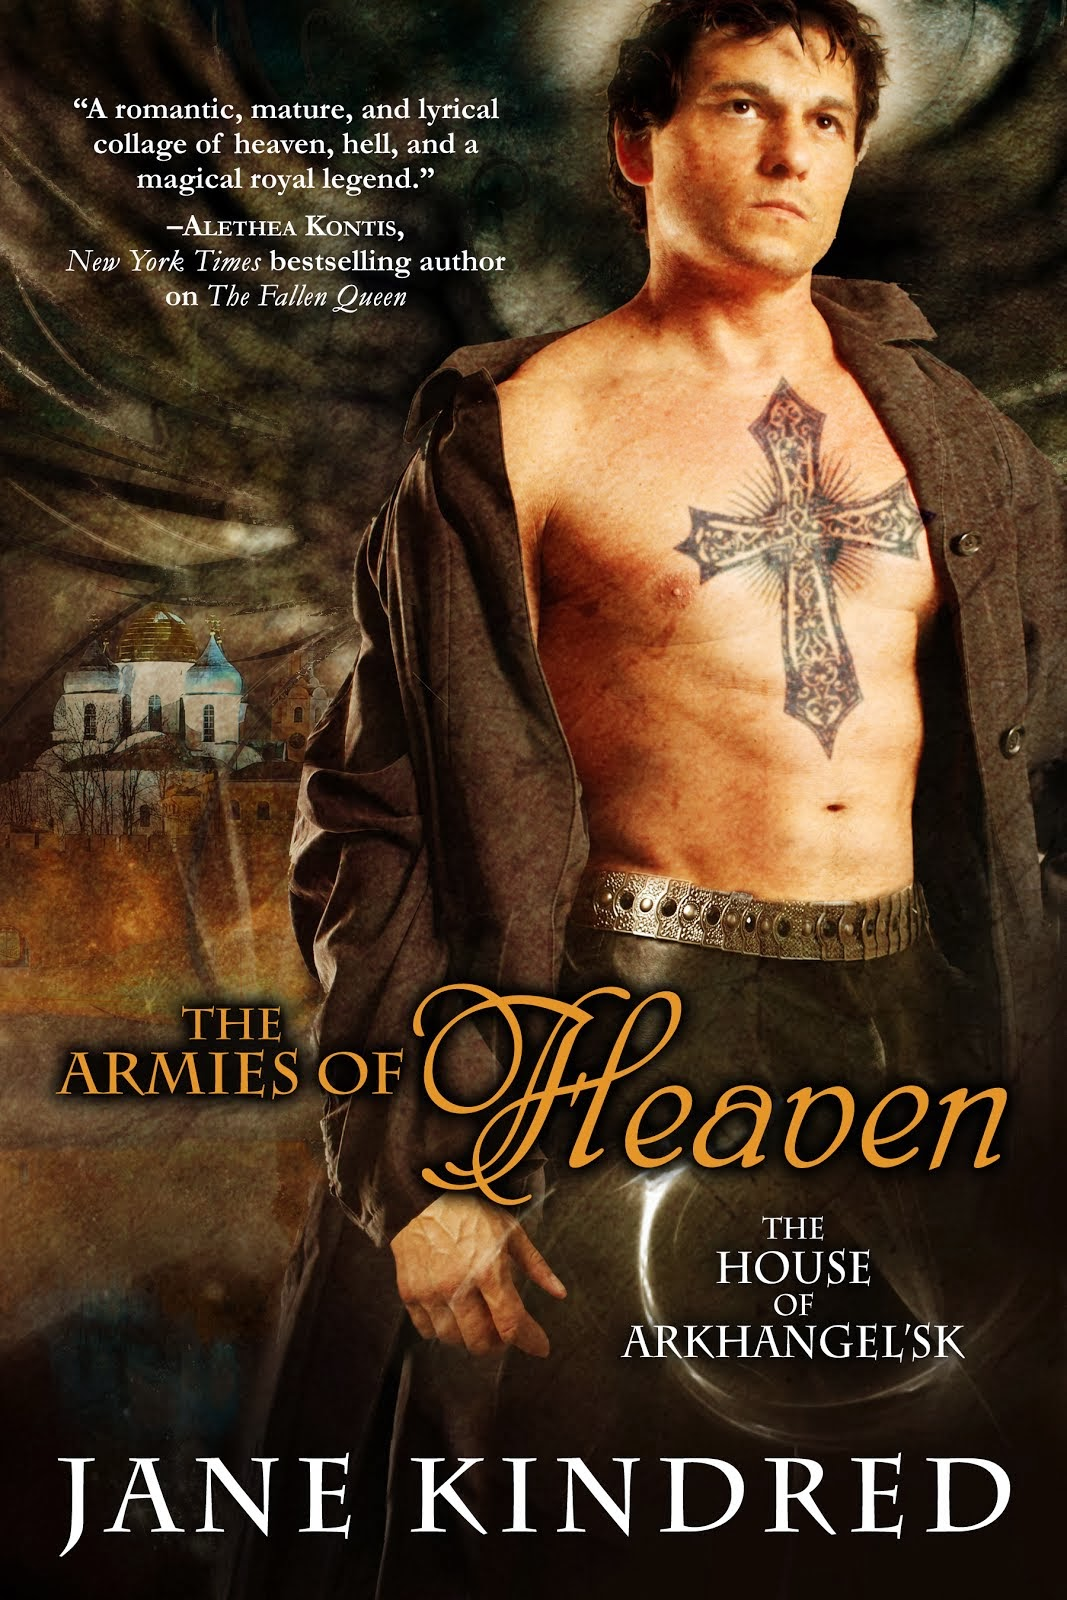 The Armies of Heaven